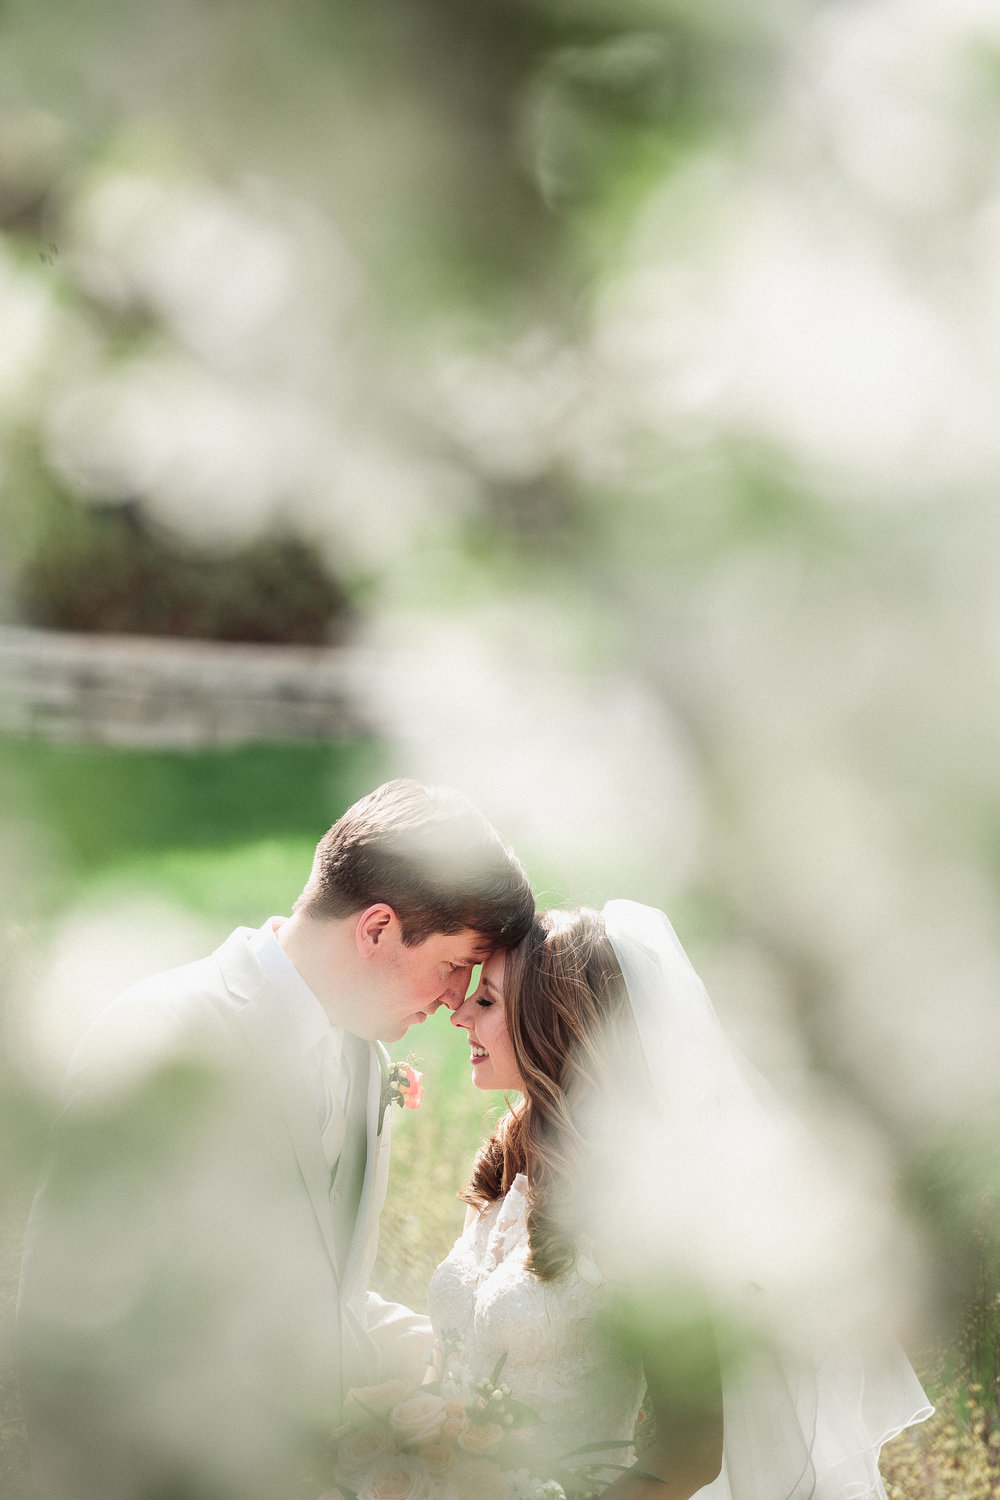 Robb McCormick Photography - Wedding Photographer (10 of 128).jpg